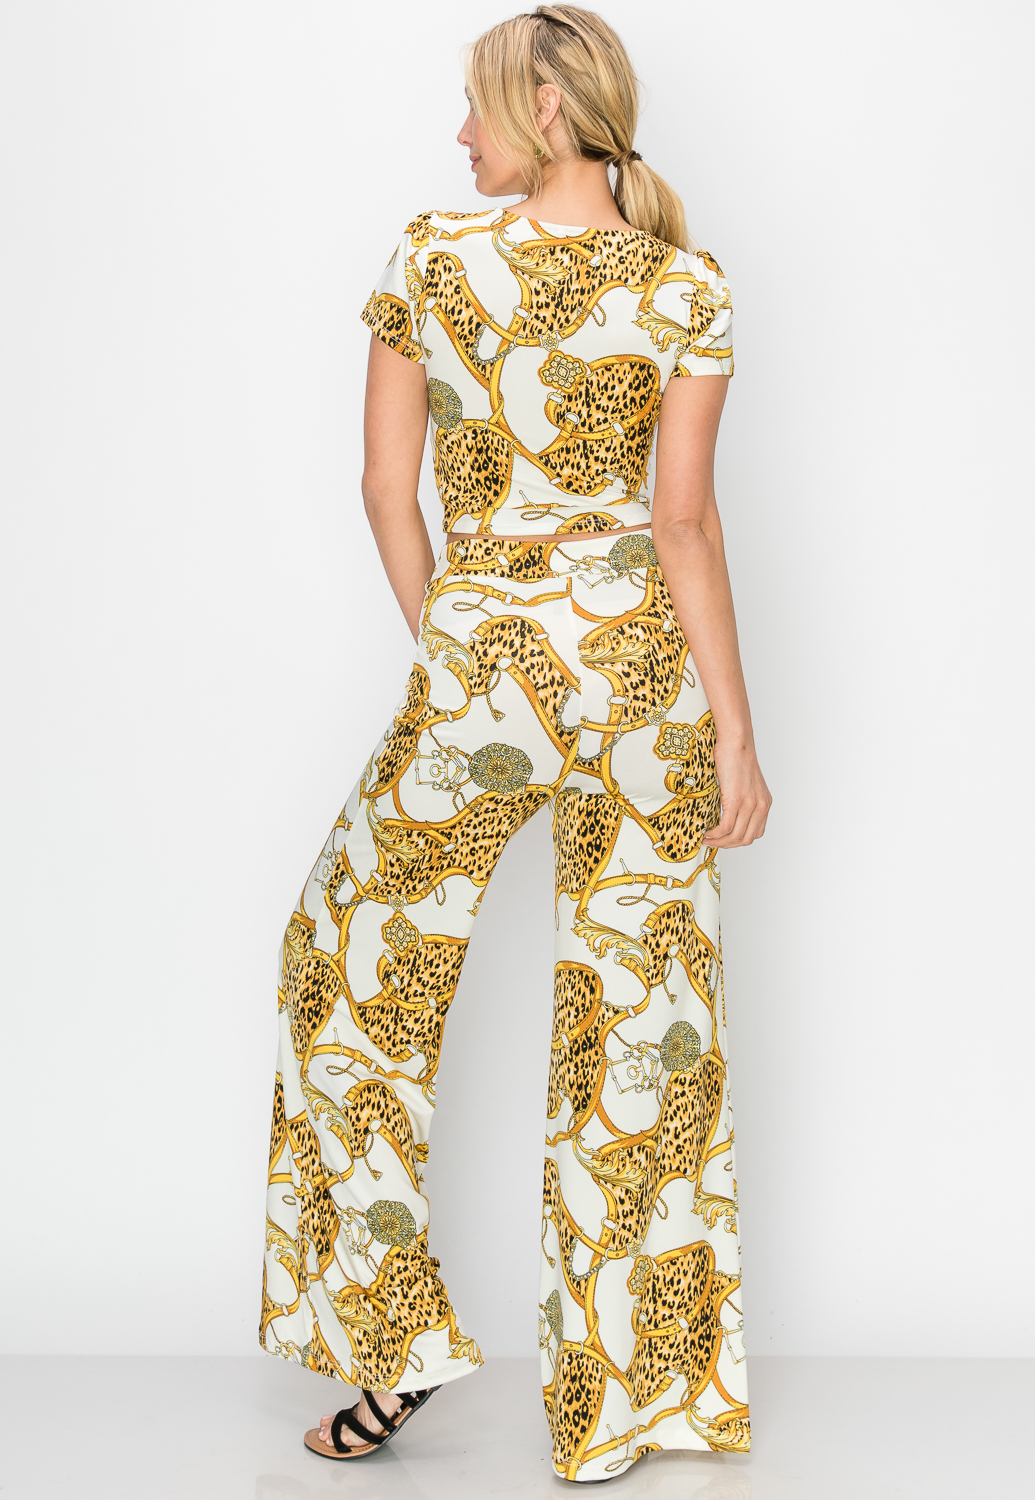 Ornate Print Top & Palazzo Pants Set